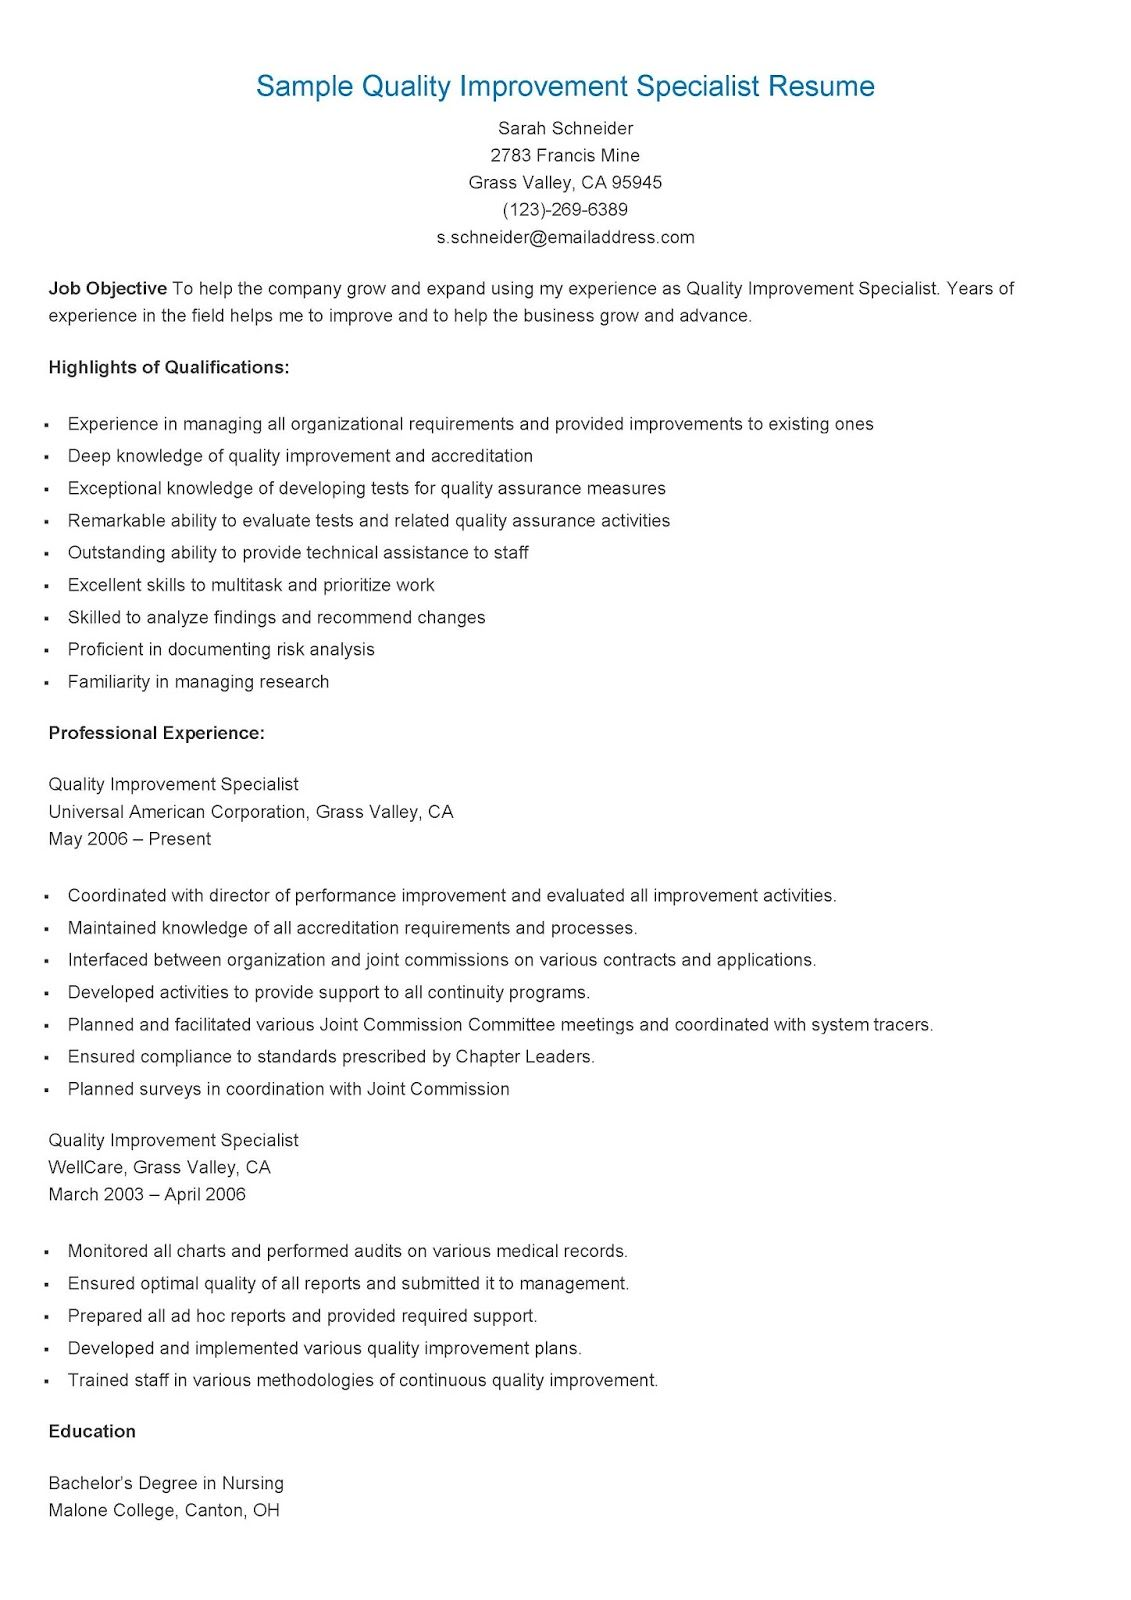 sample quality improvement specialist resume resame resume